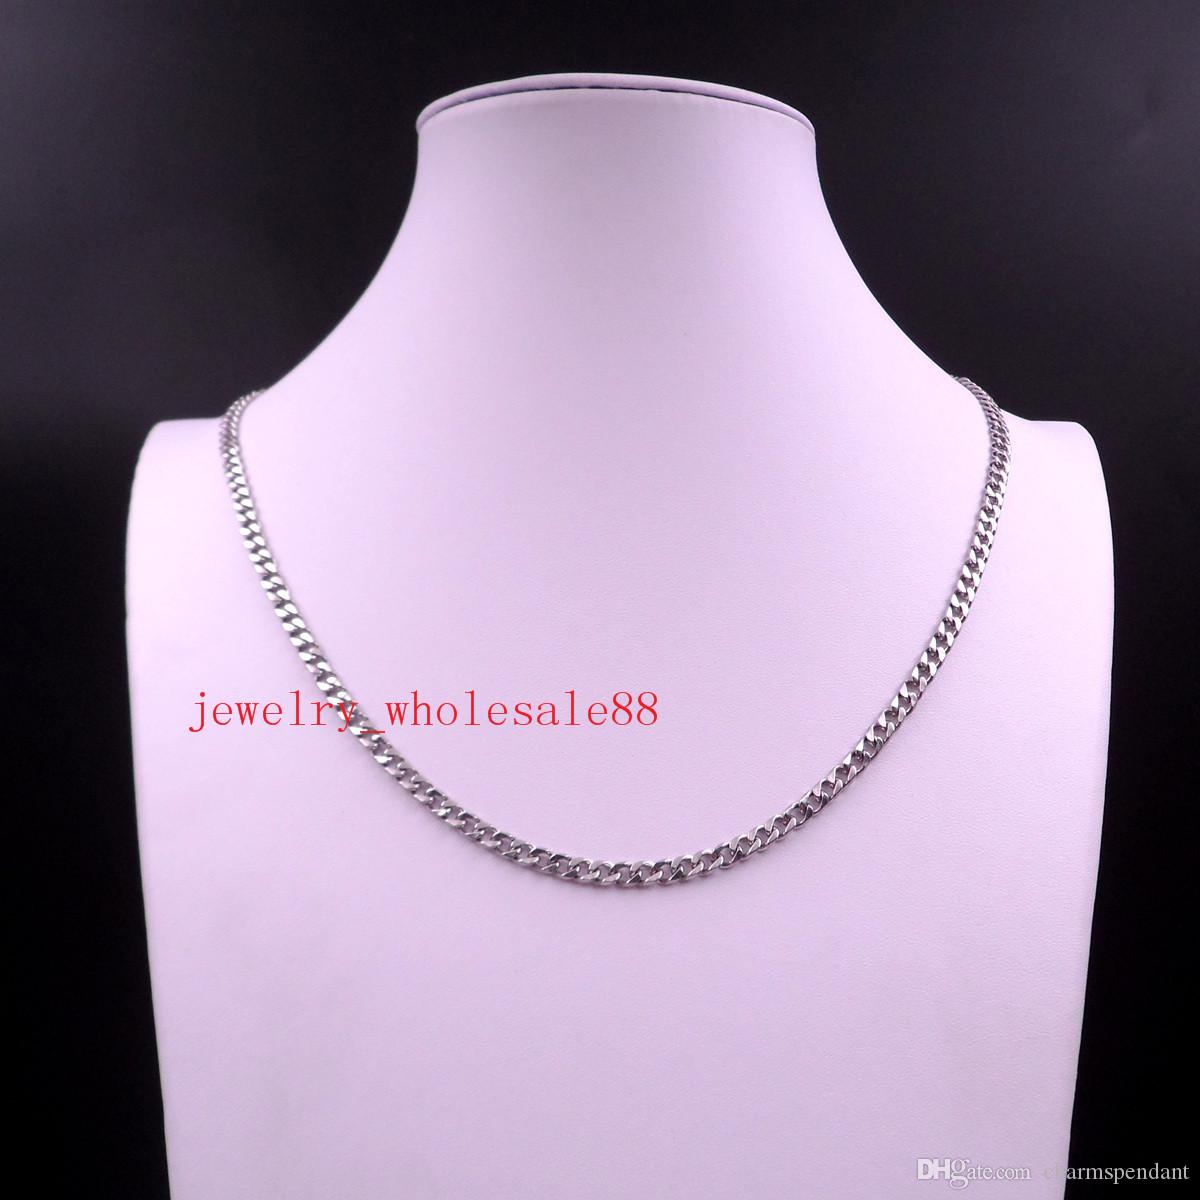 Large wholesale 100meter Silver TOne Stainless steel jewelry finding smooth thin 5mm Smooth Curb chain DIY Necklace Bracelet